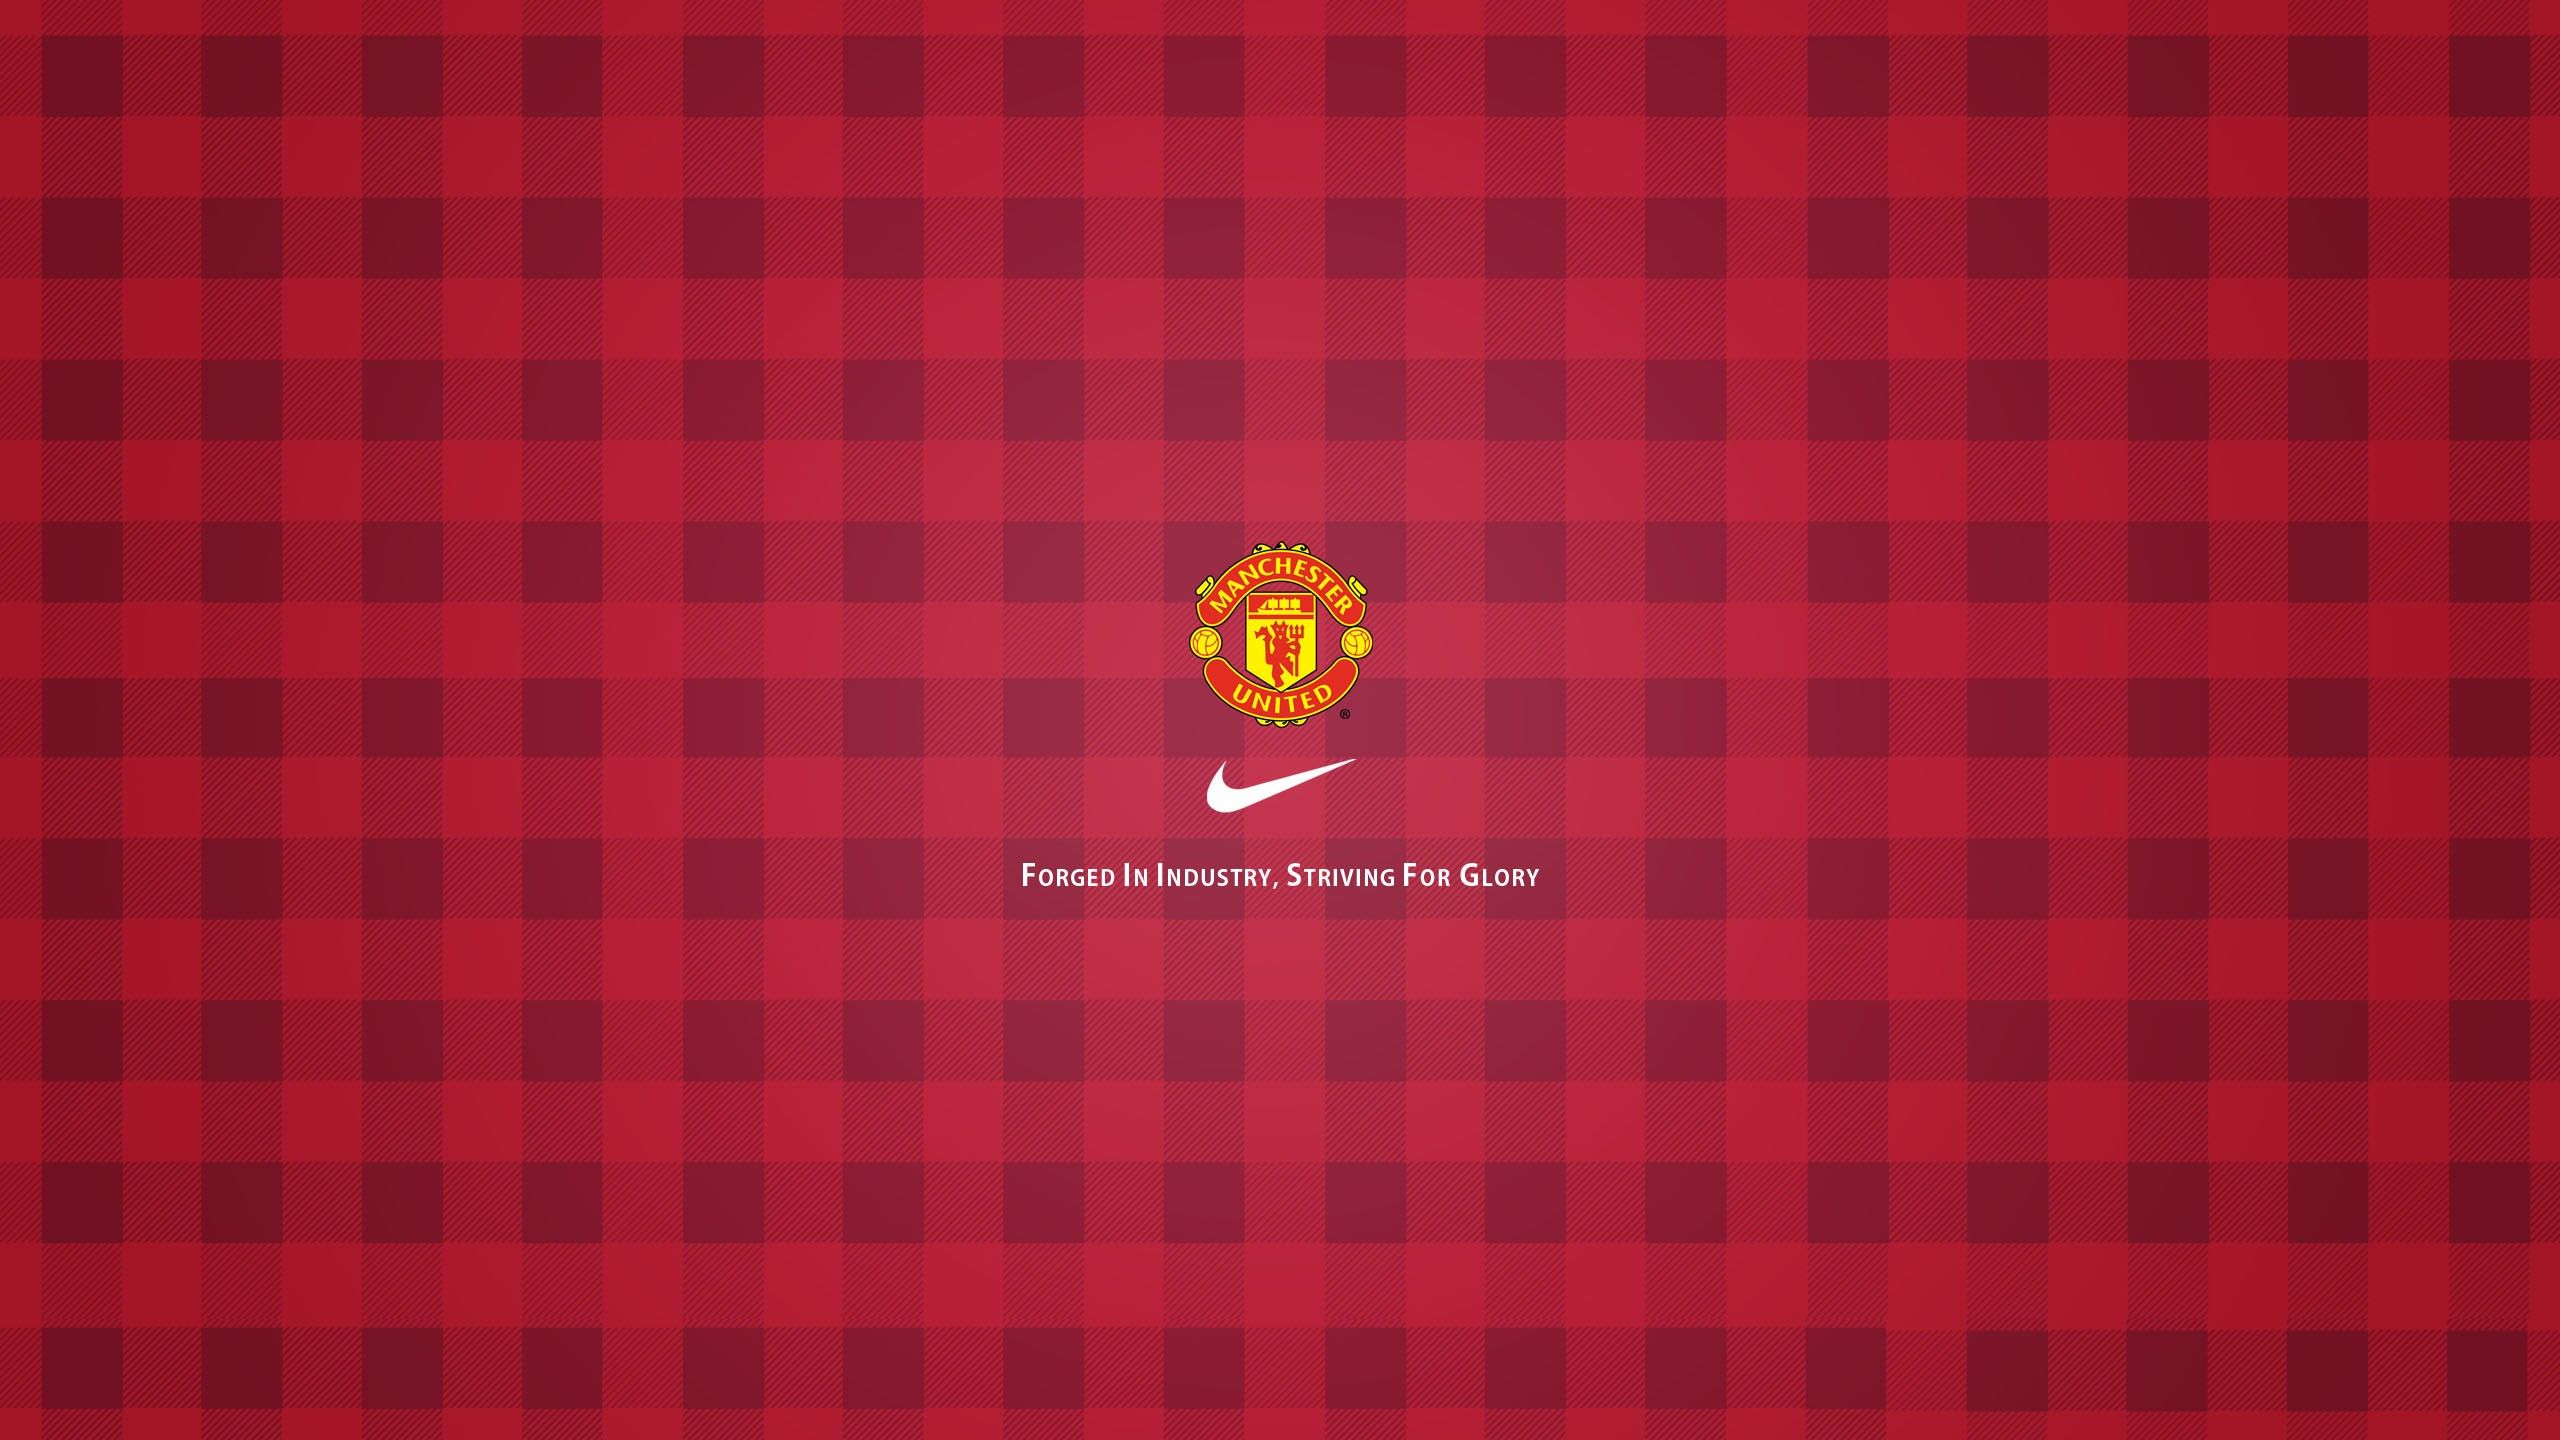 Manchester united wallpapers x hd wallpapers pinterest manchester united wallpapers x voltagebd Image collections